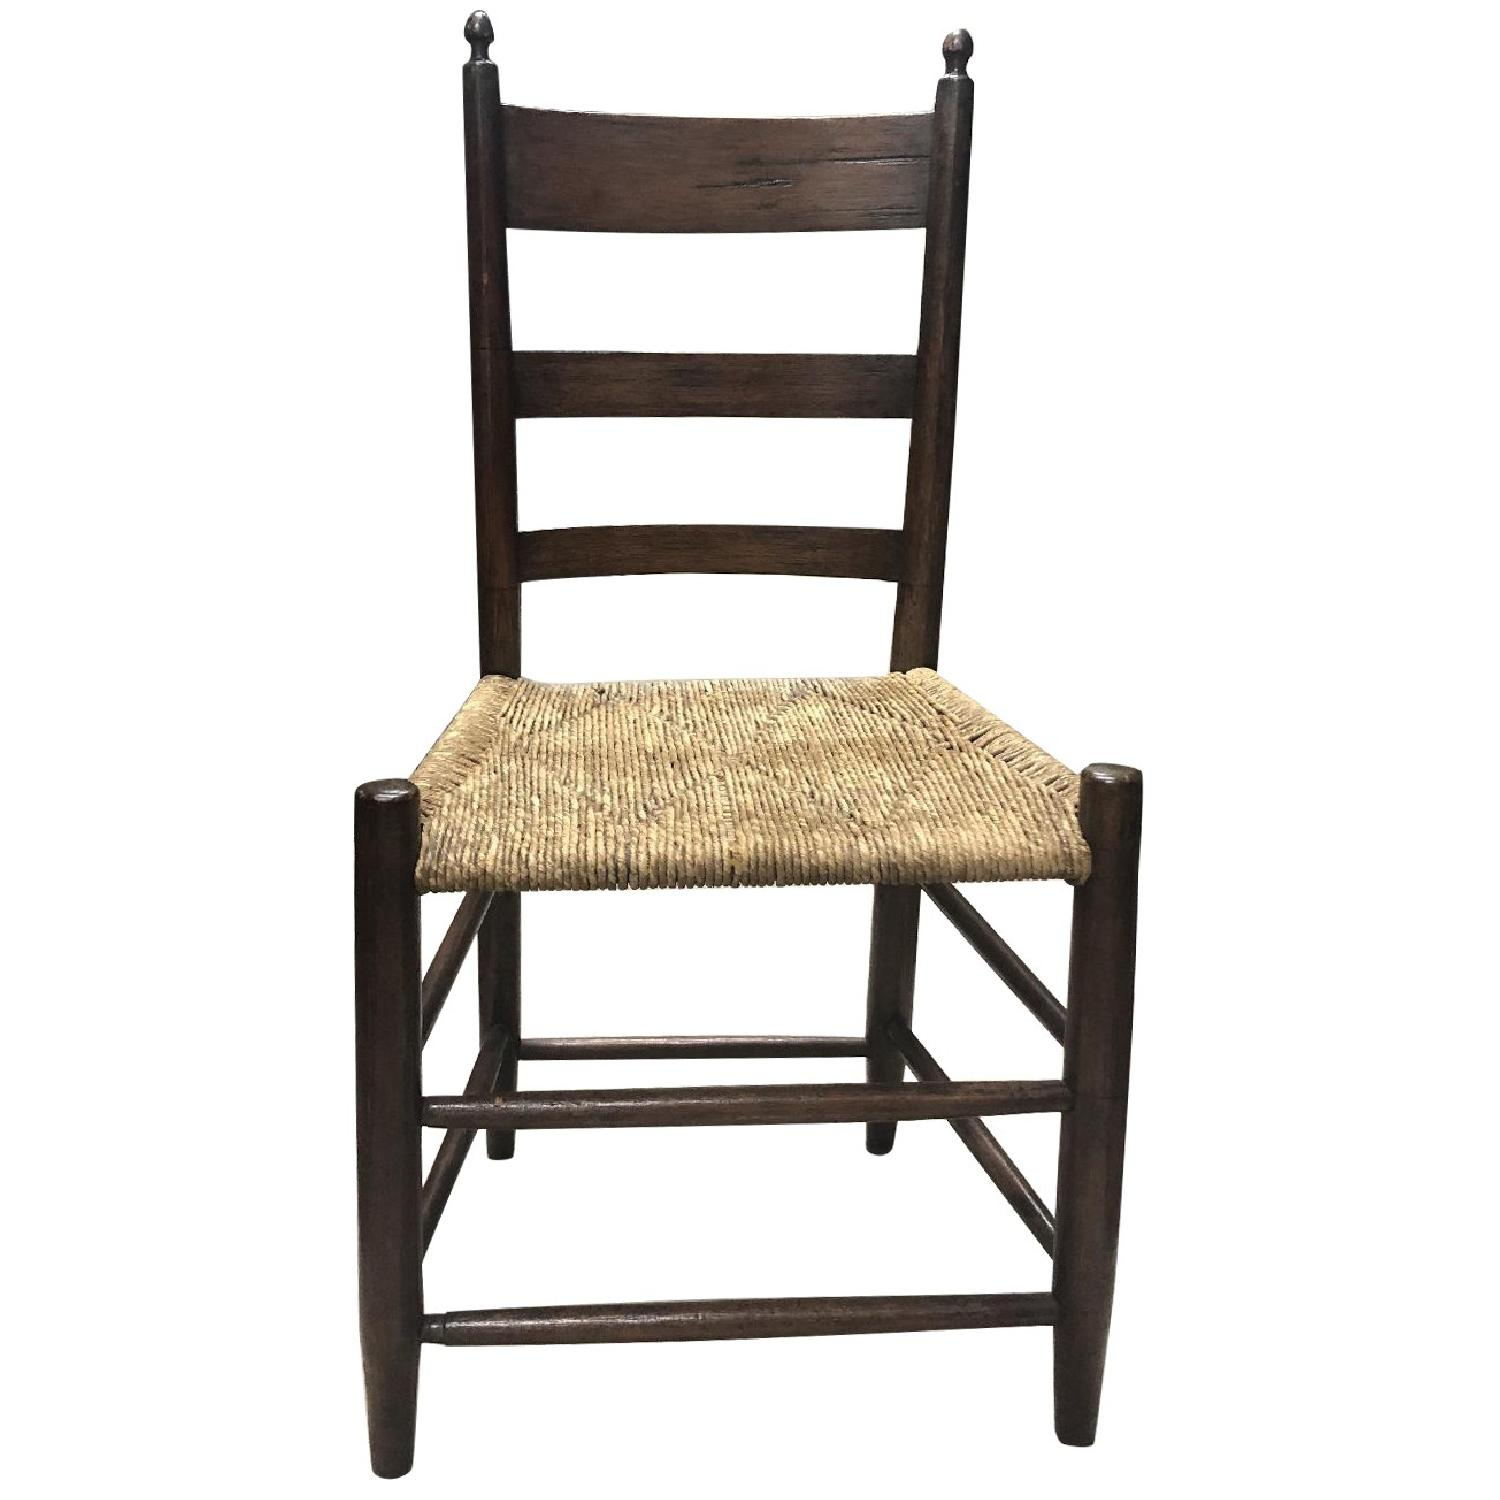 Vintage 19th Century Shaker Chestnut Dining Chairs - image-0